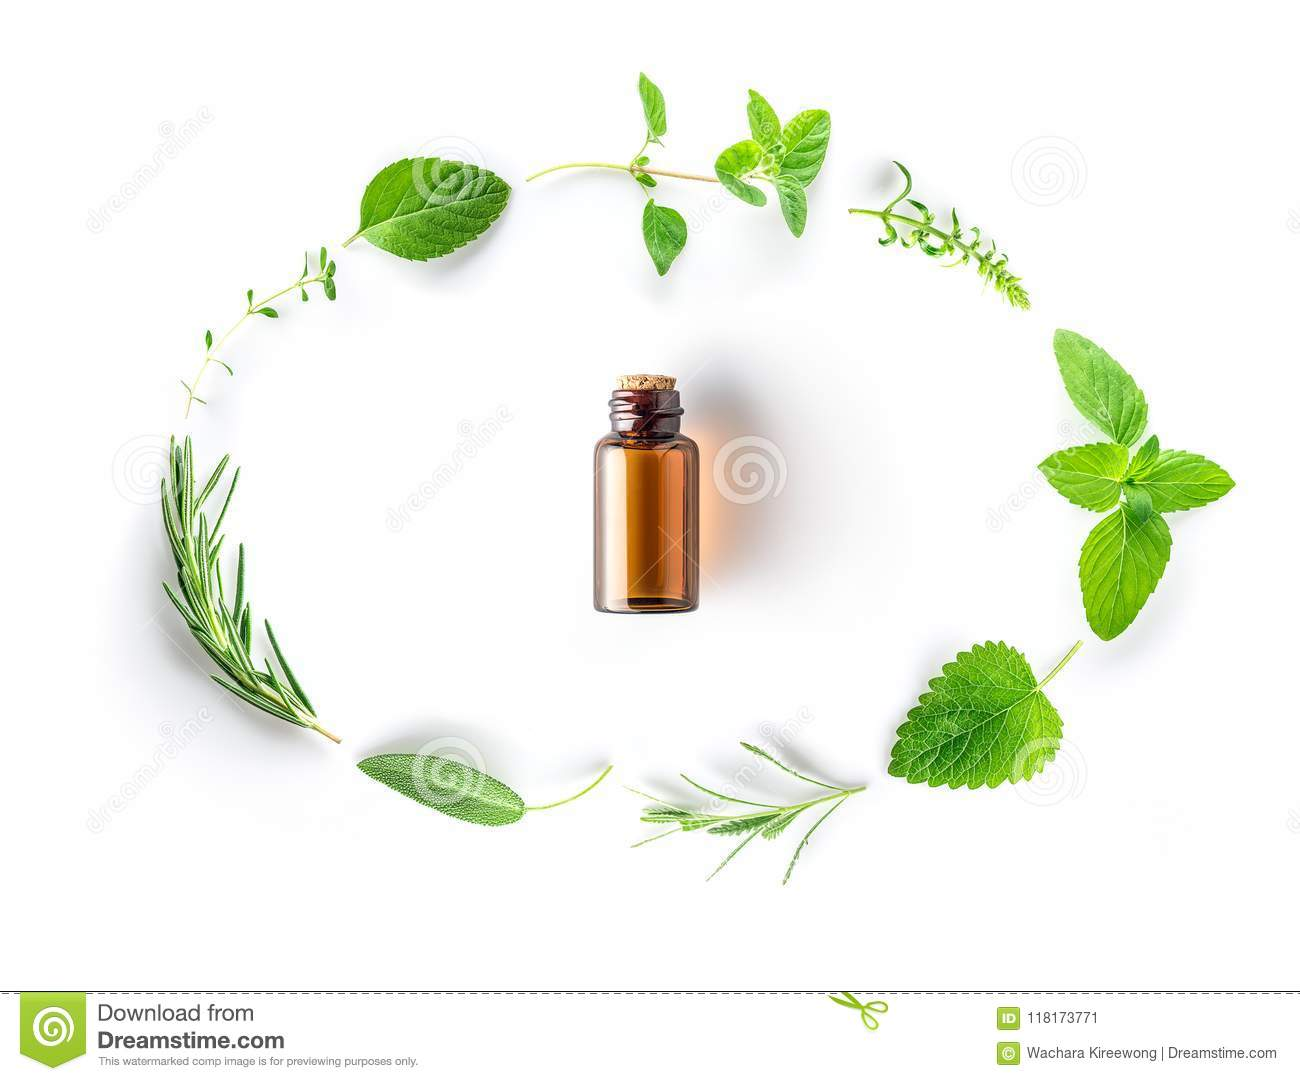 Bottle of essential oil with fresh herbal sage, rosemary, oregano, thyme, lemon balm, spearmint and peppermint setup with flat la